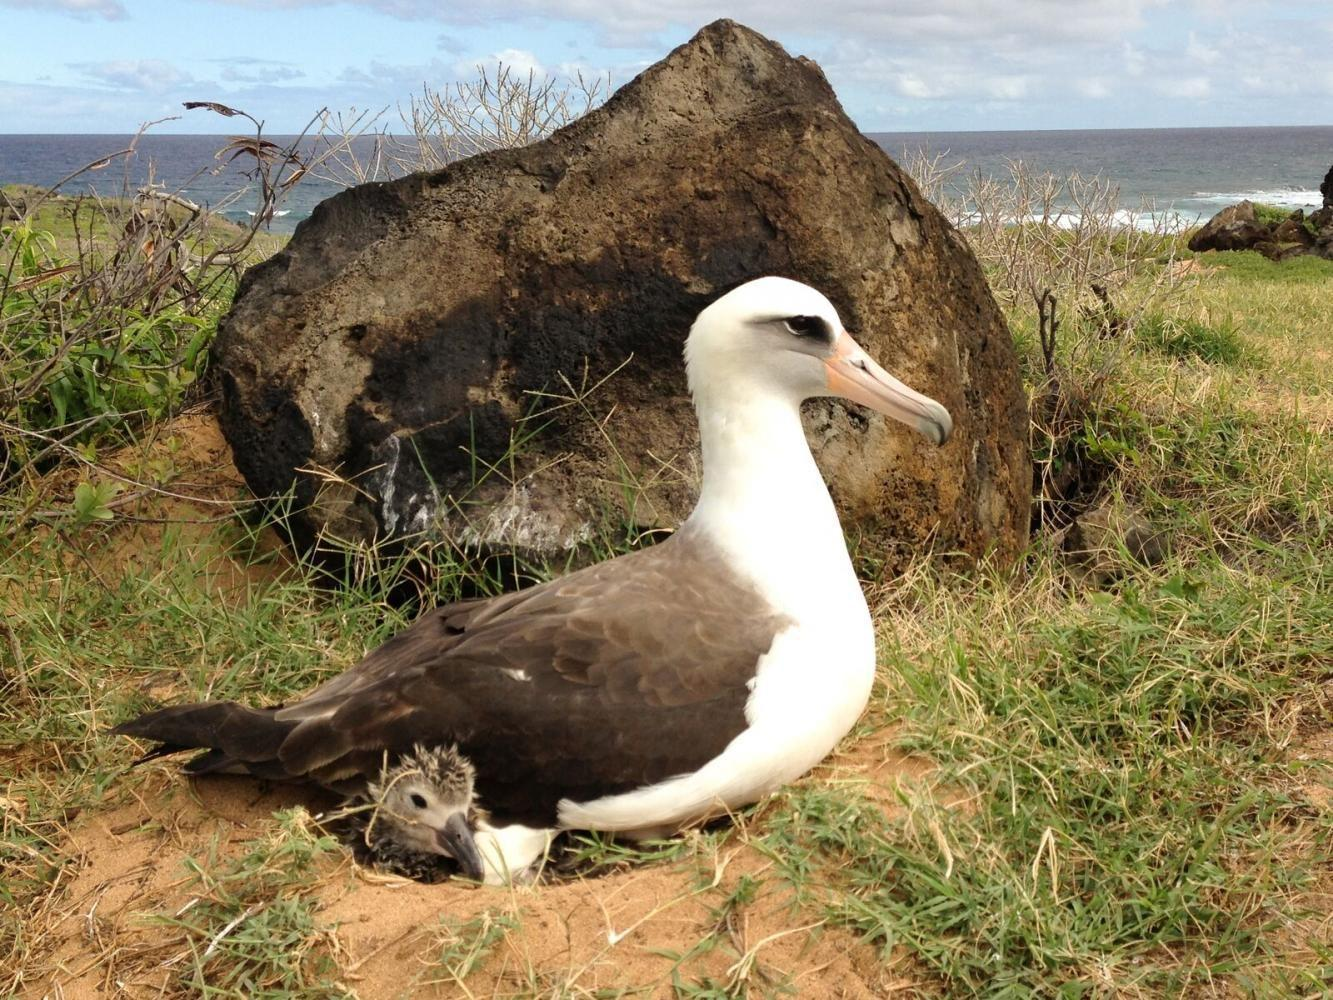 The+Laysan+albatross%2C+a+federally+protected+species%2C+with+its+chick+at+the+Kaena+Point+Natural+Area+Reserve+in+Hawaii.+